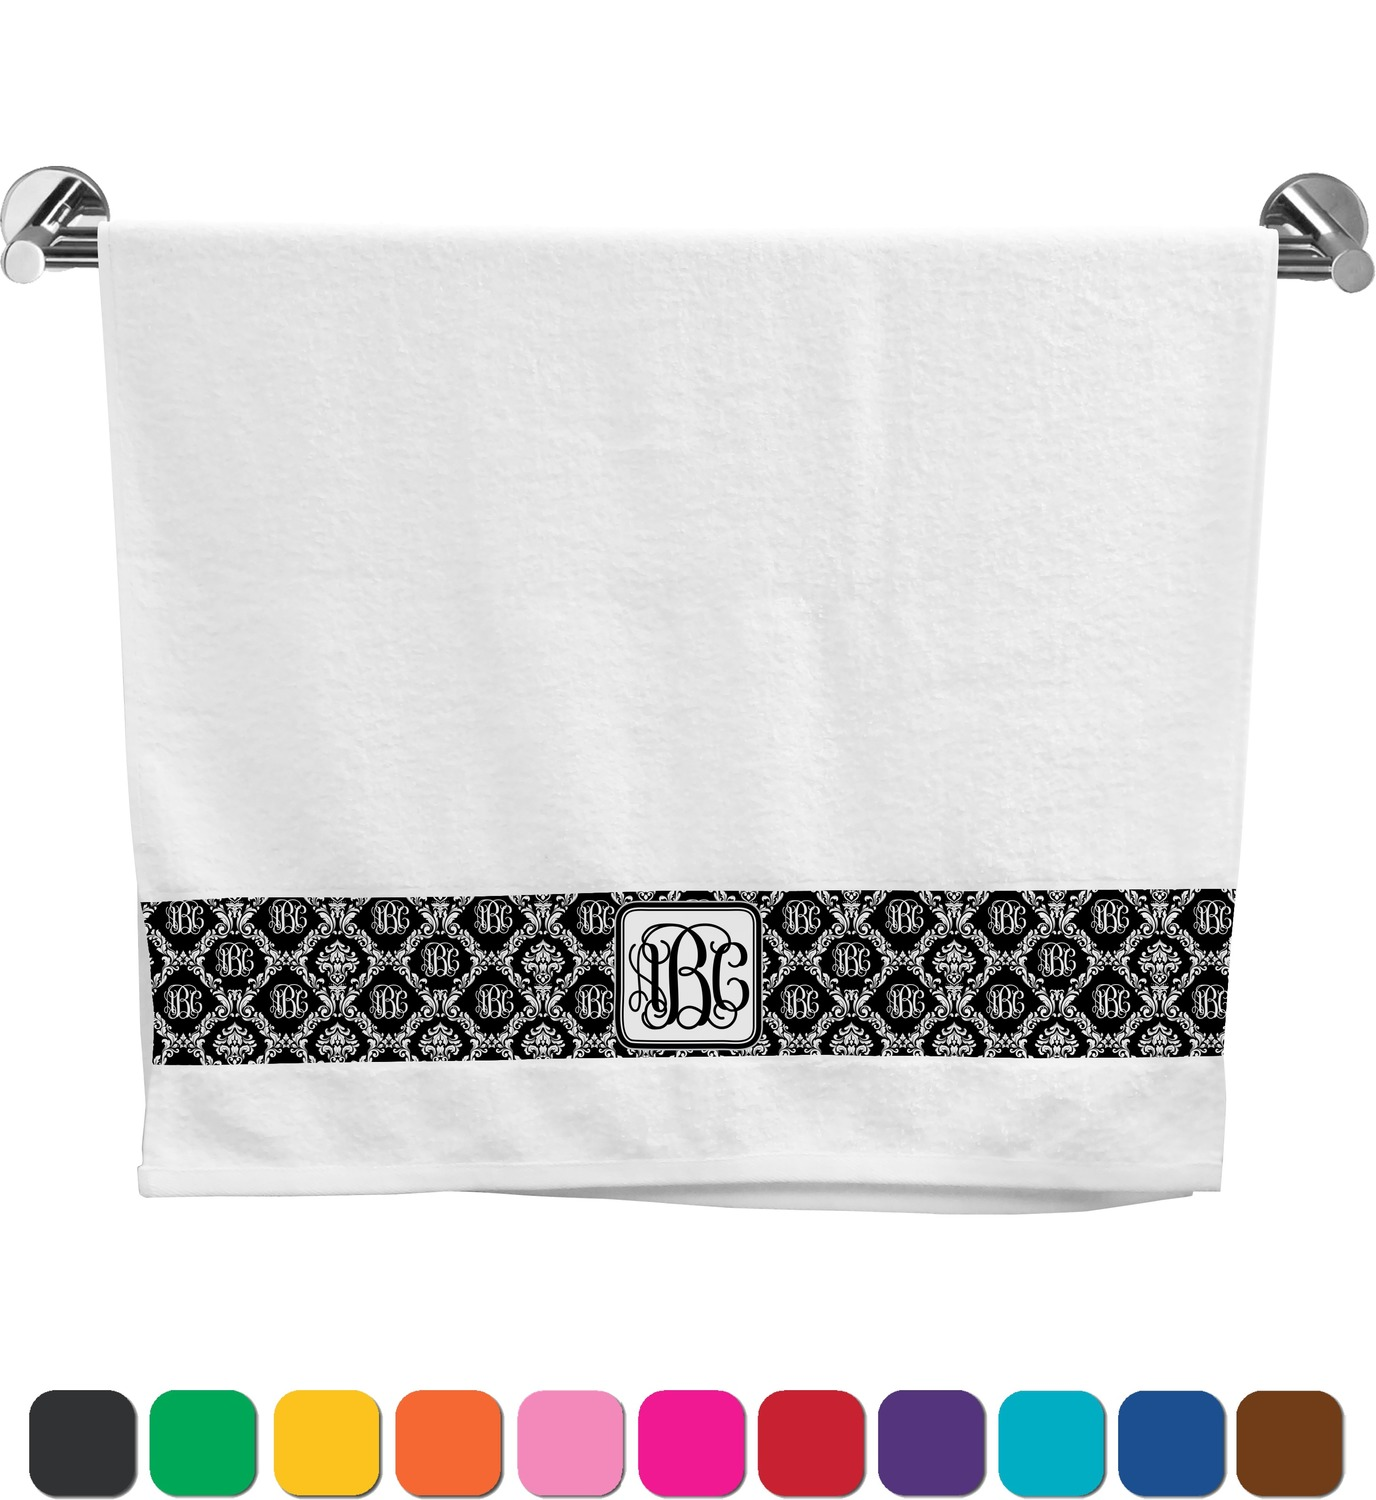 Attractive monogrammed bath towels with personalized towel of monogrammed towel set ideas